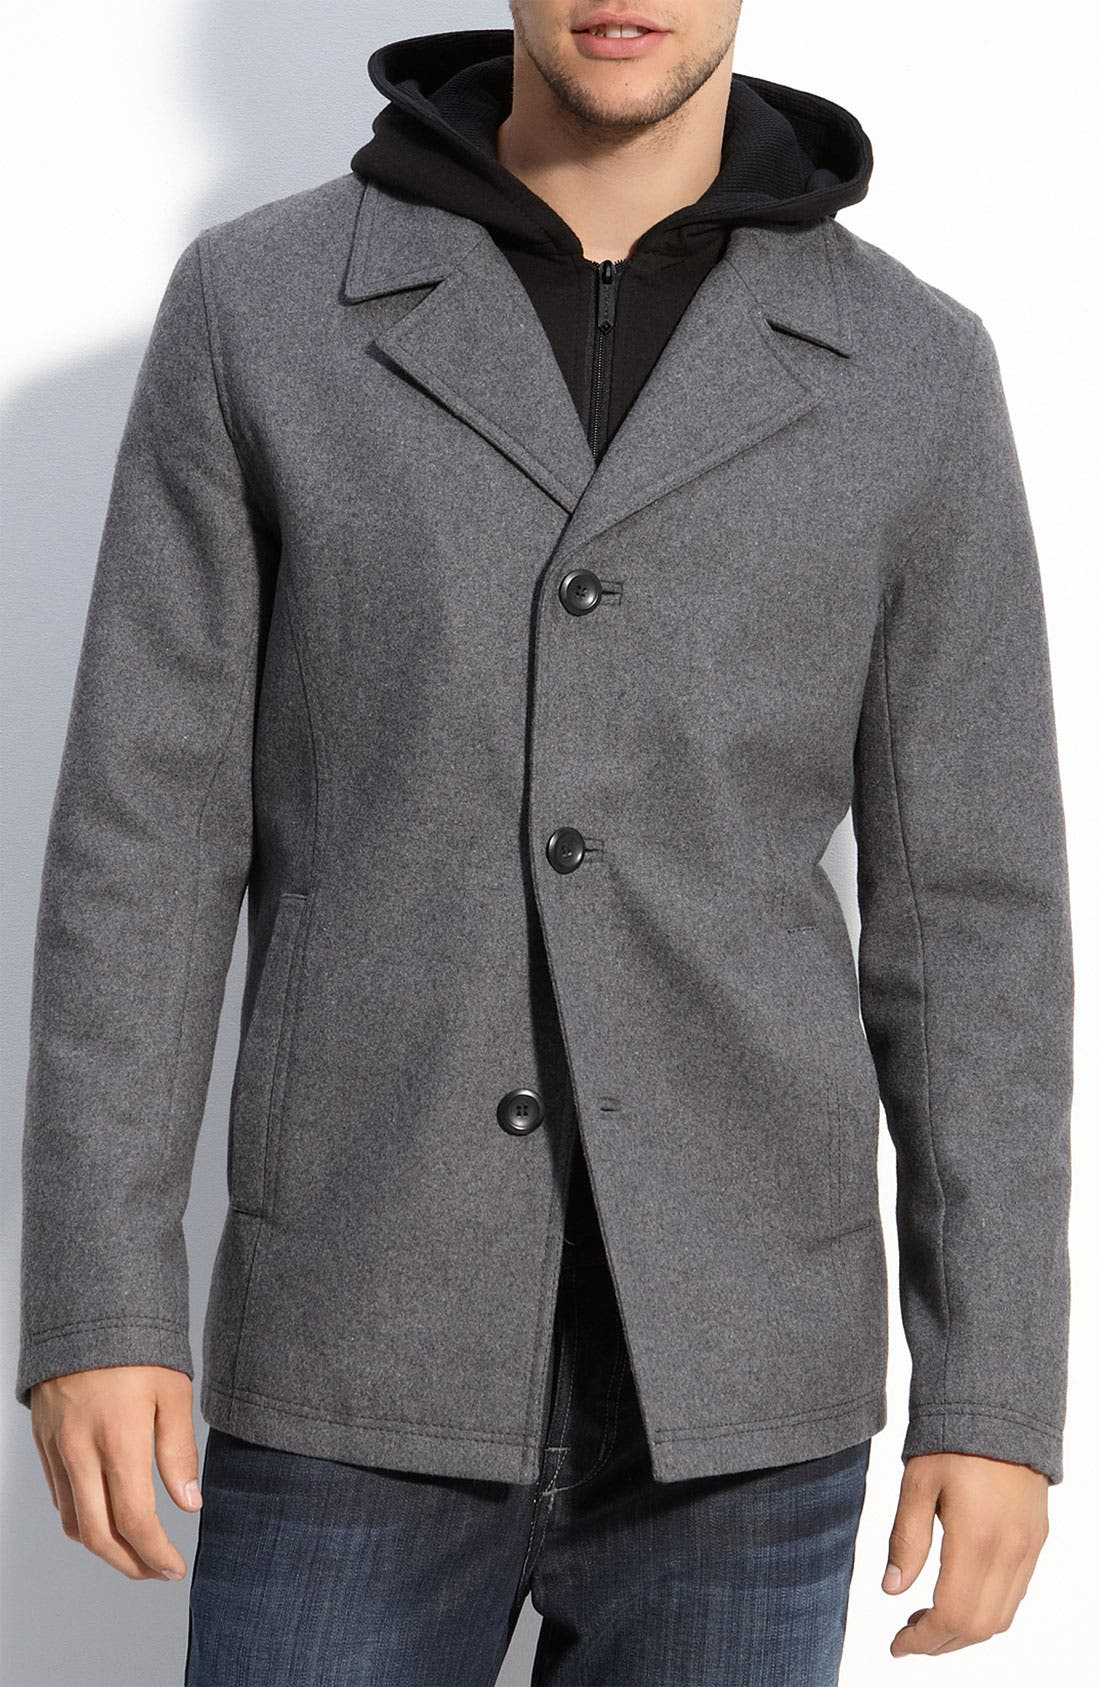 Main Image - Black Rivet Trim Fit Single Breasted Peacoat with Removable Hooded Layer